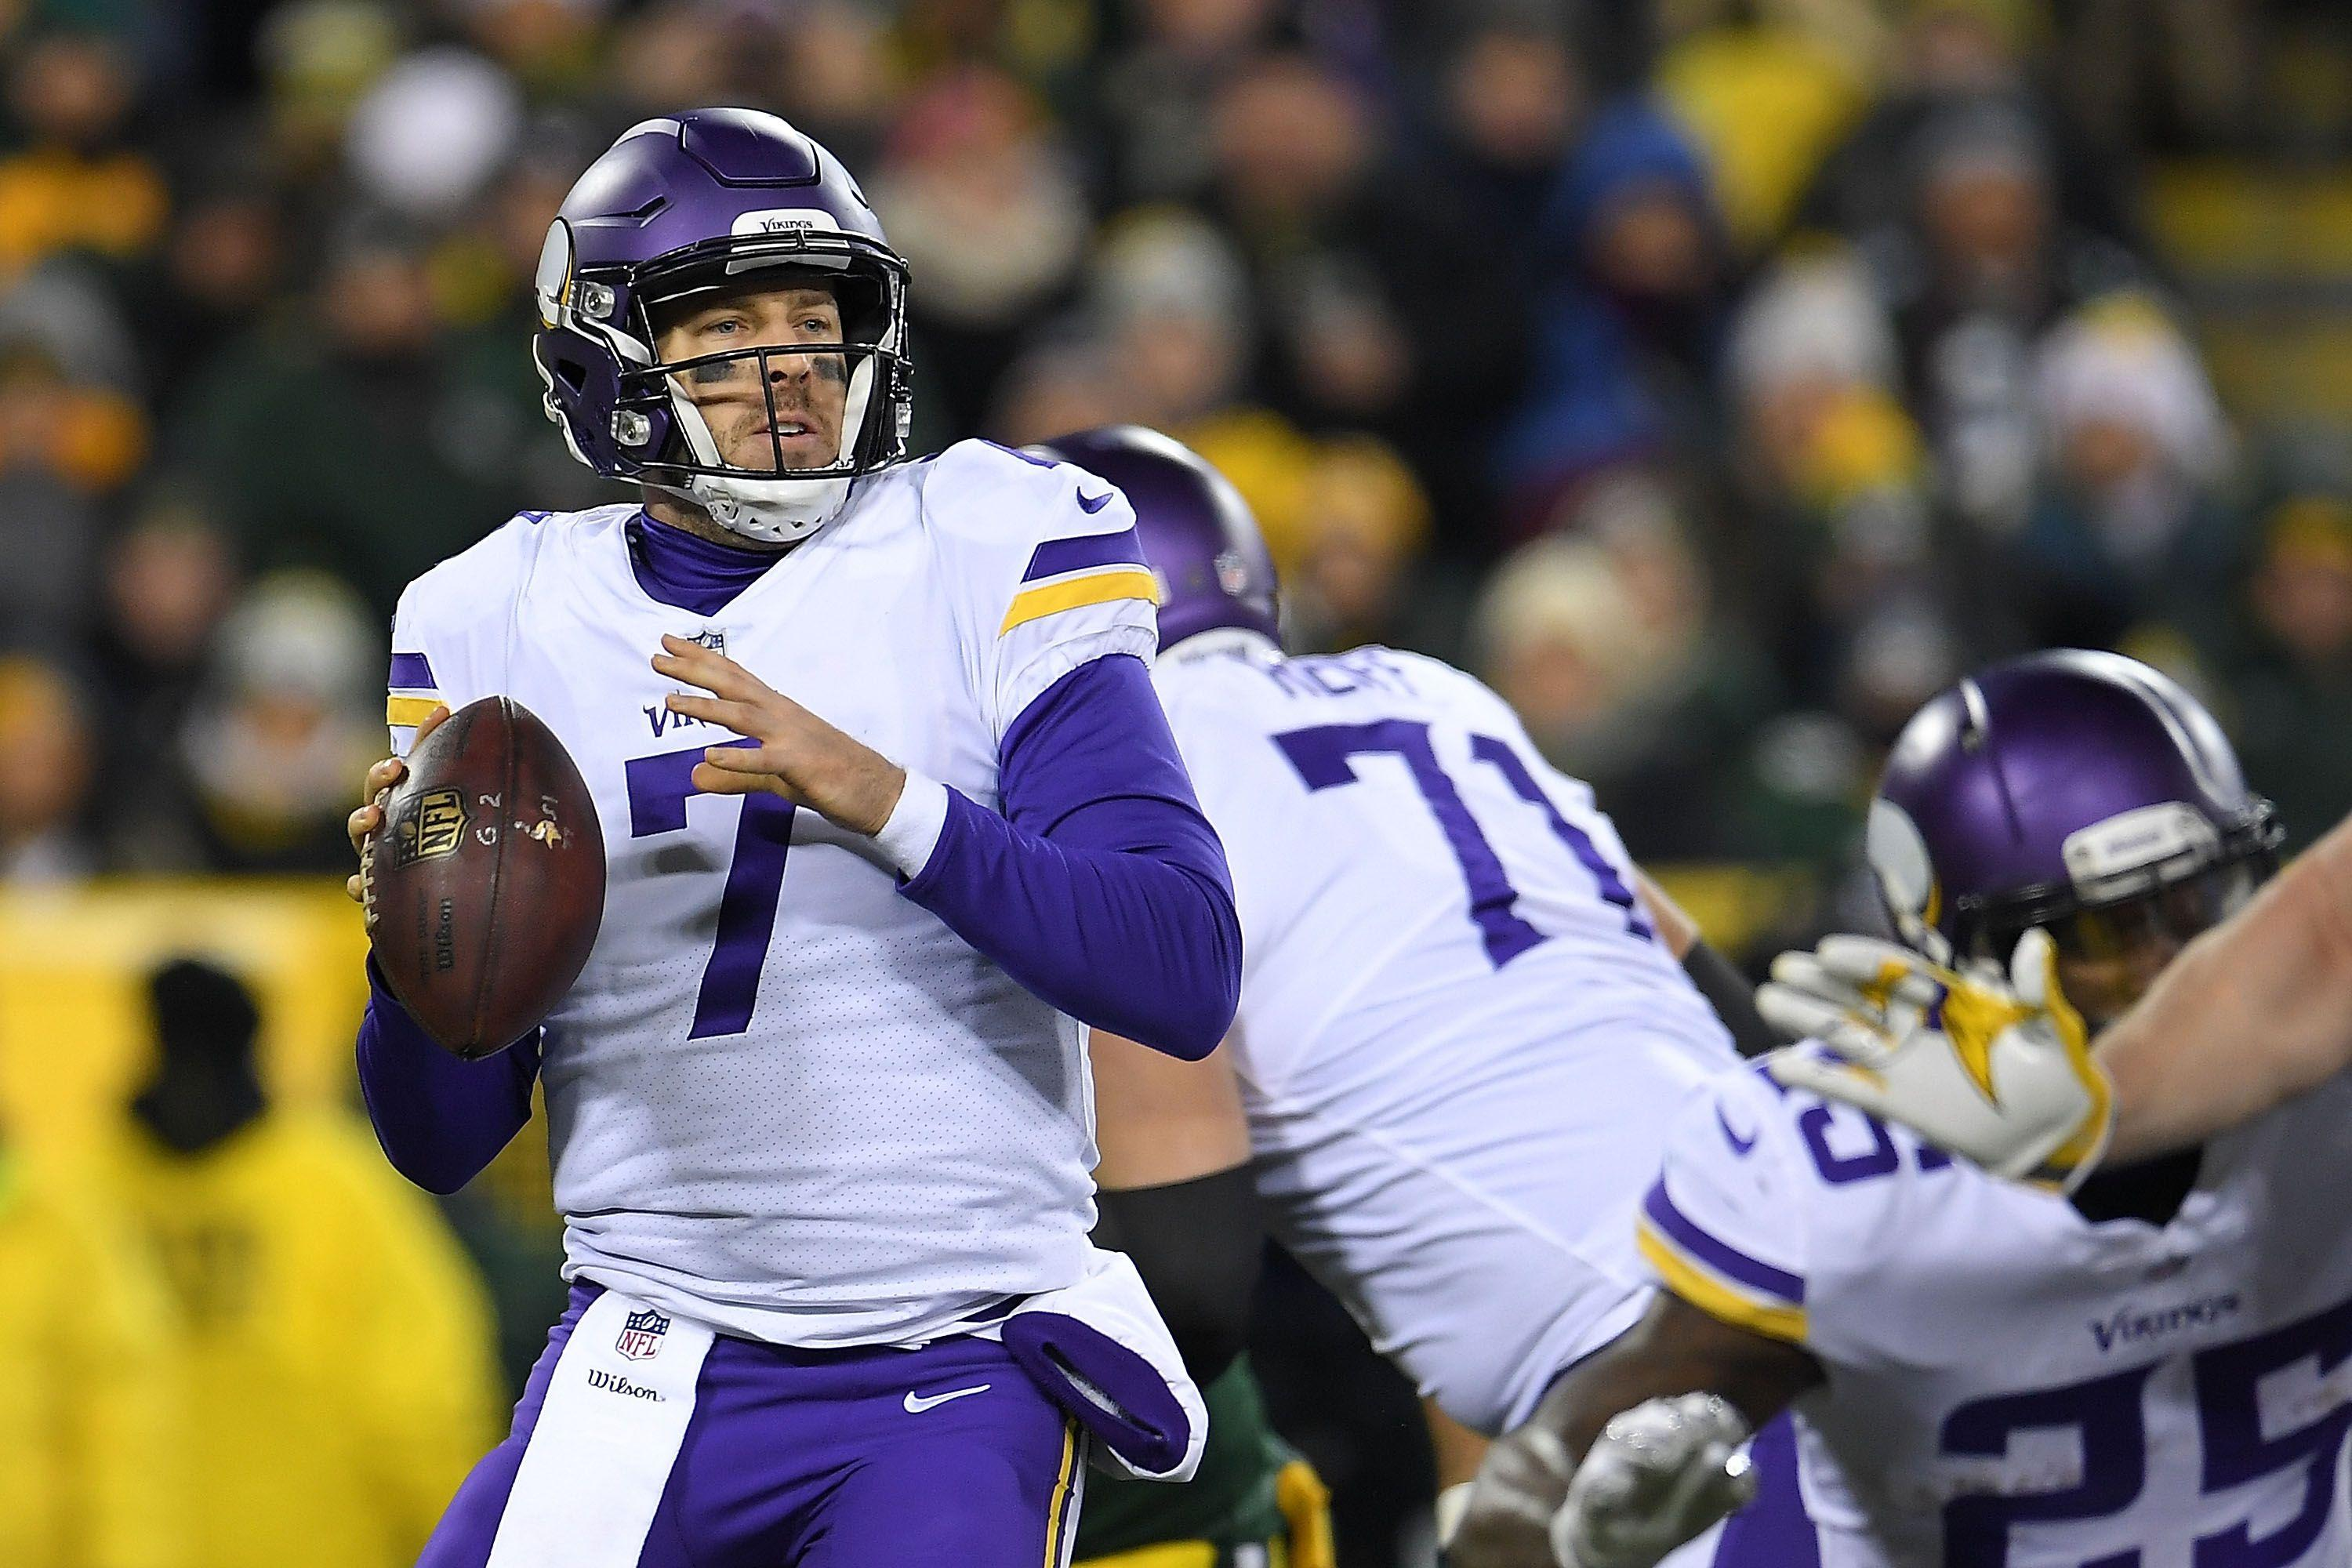 Changes are coming to the Minnesota Vikings' offense in 2018